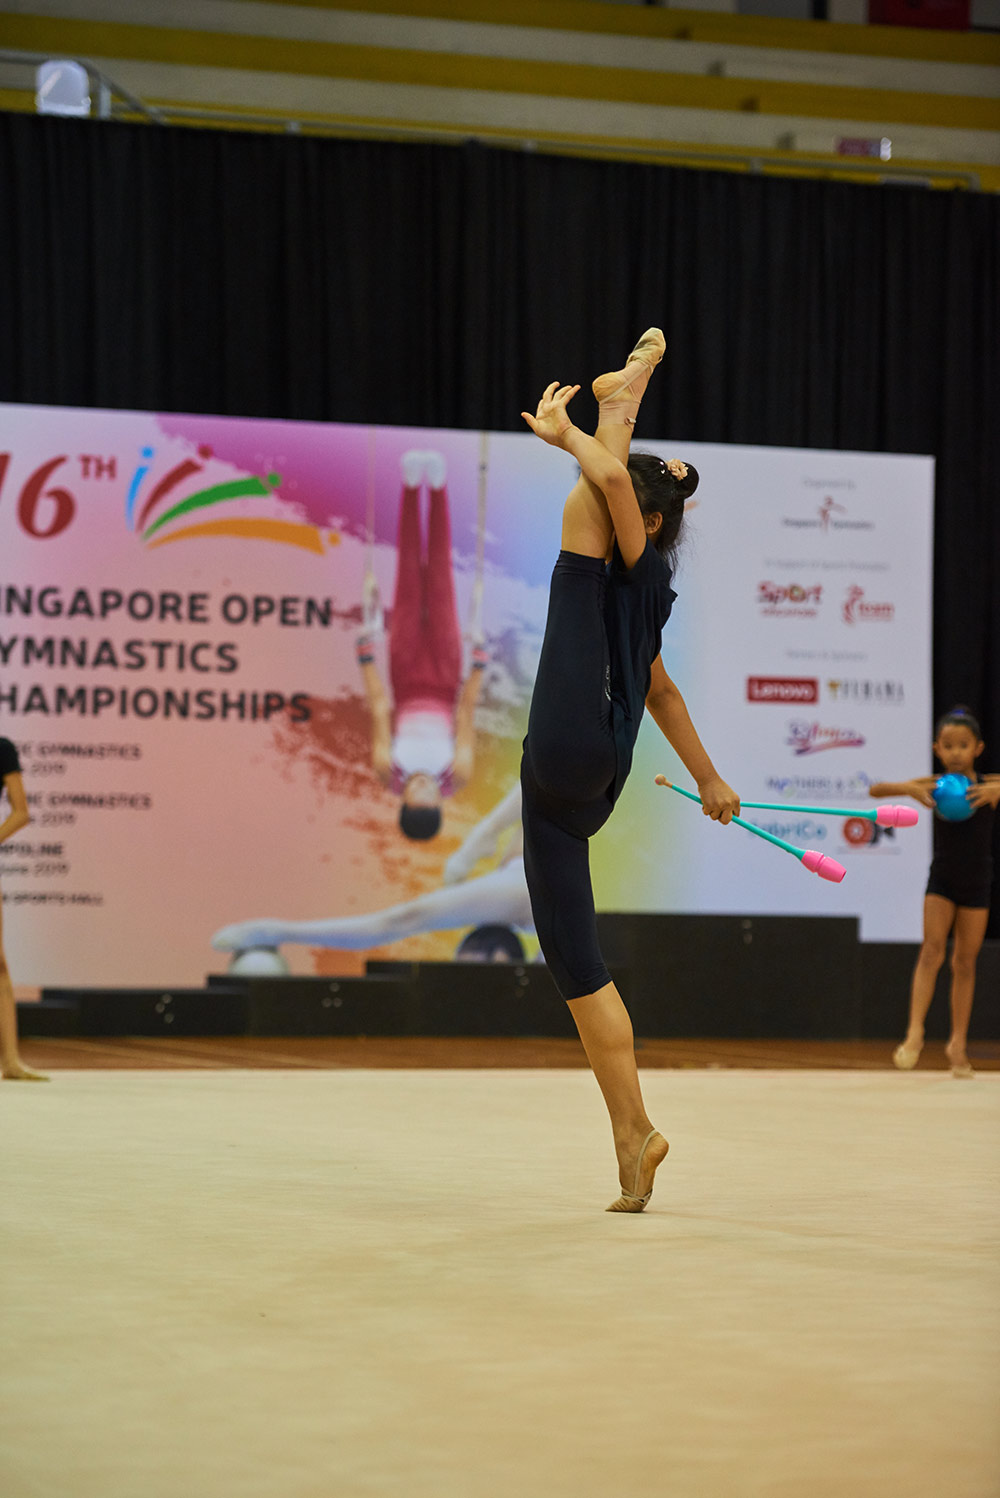 Podium Training for SG Open Championships 2019 30